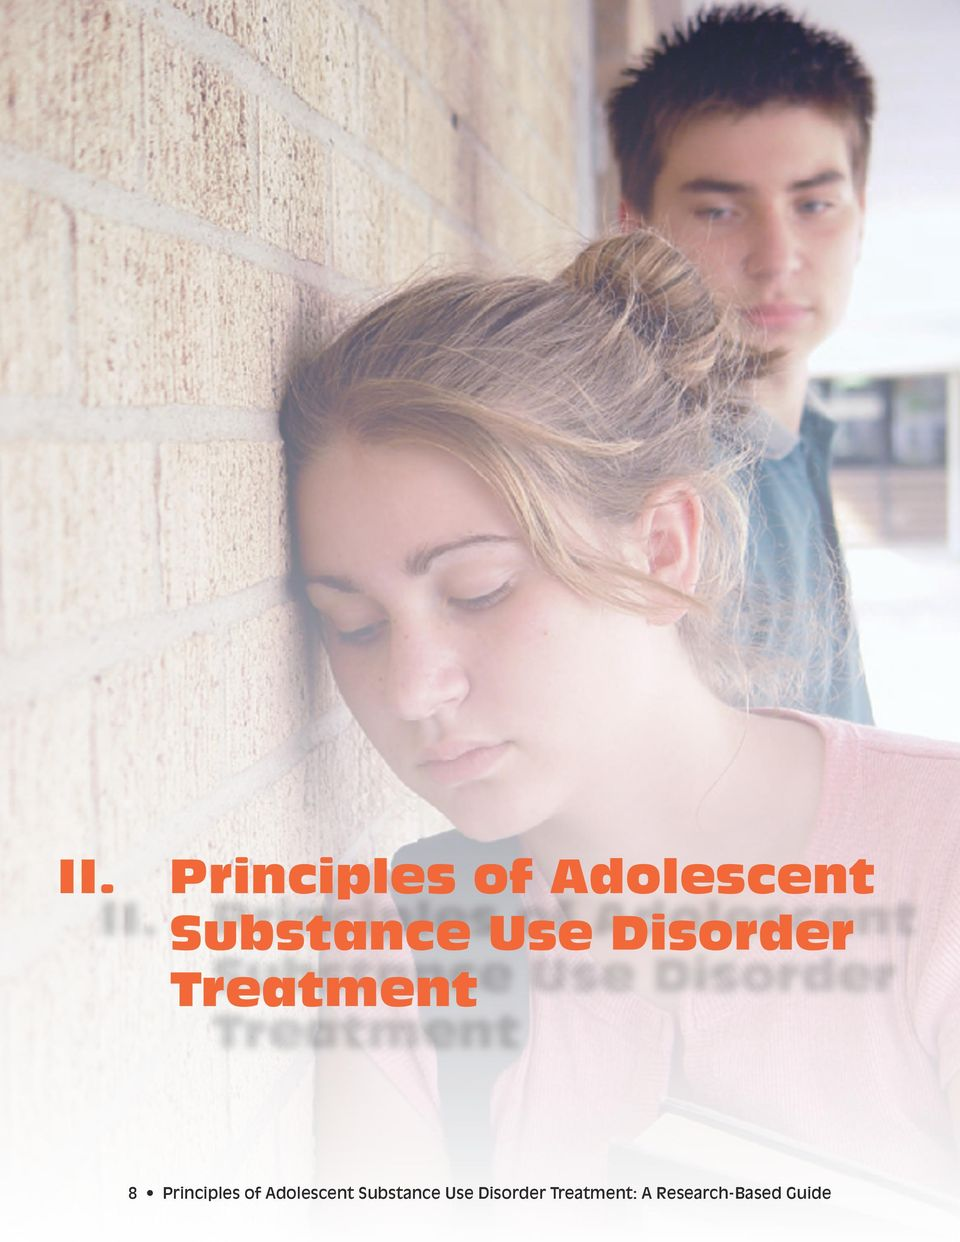 Principles of Adolescent Substance